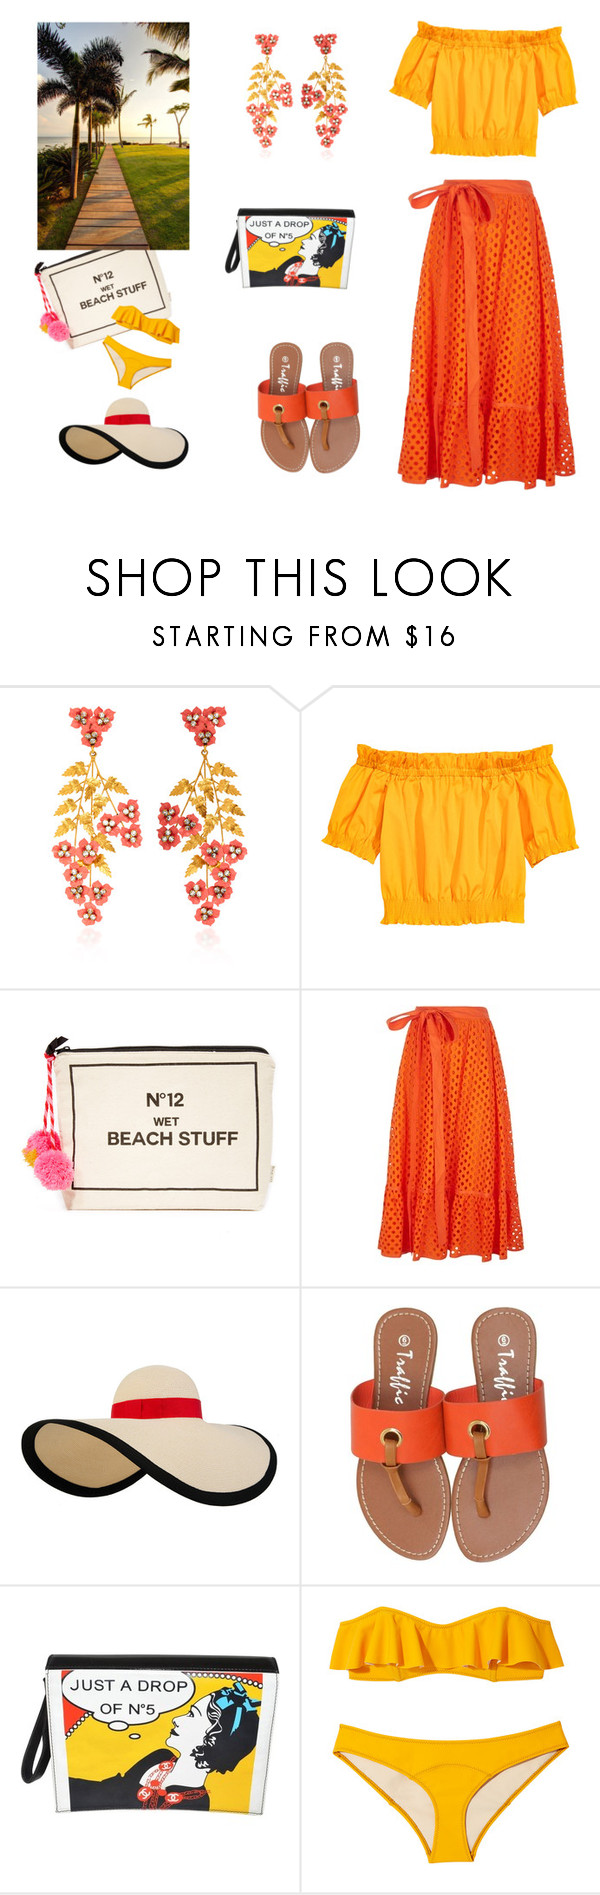 """""""Summer Sun Walk"""" by scolab ❤ liked on Polyvore featuring Jennifer Behr, Bag-All, Tory Burch, Eugenia Kim, Chanel and Lisa Marie Fernandez"""